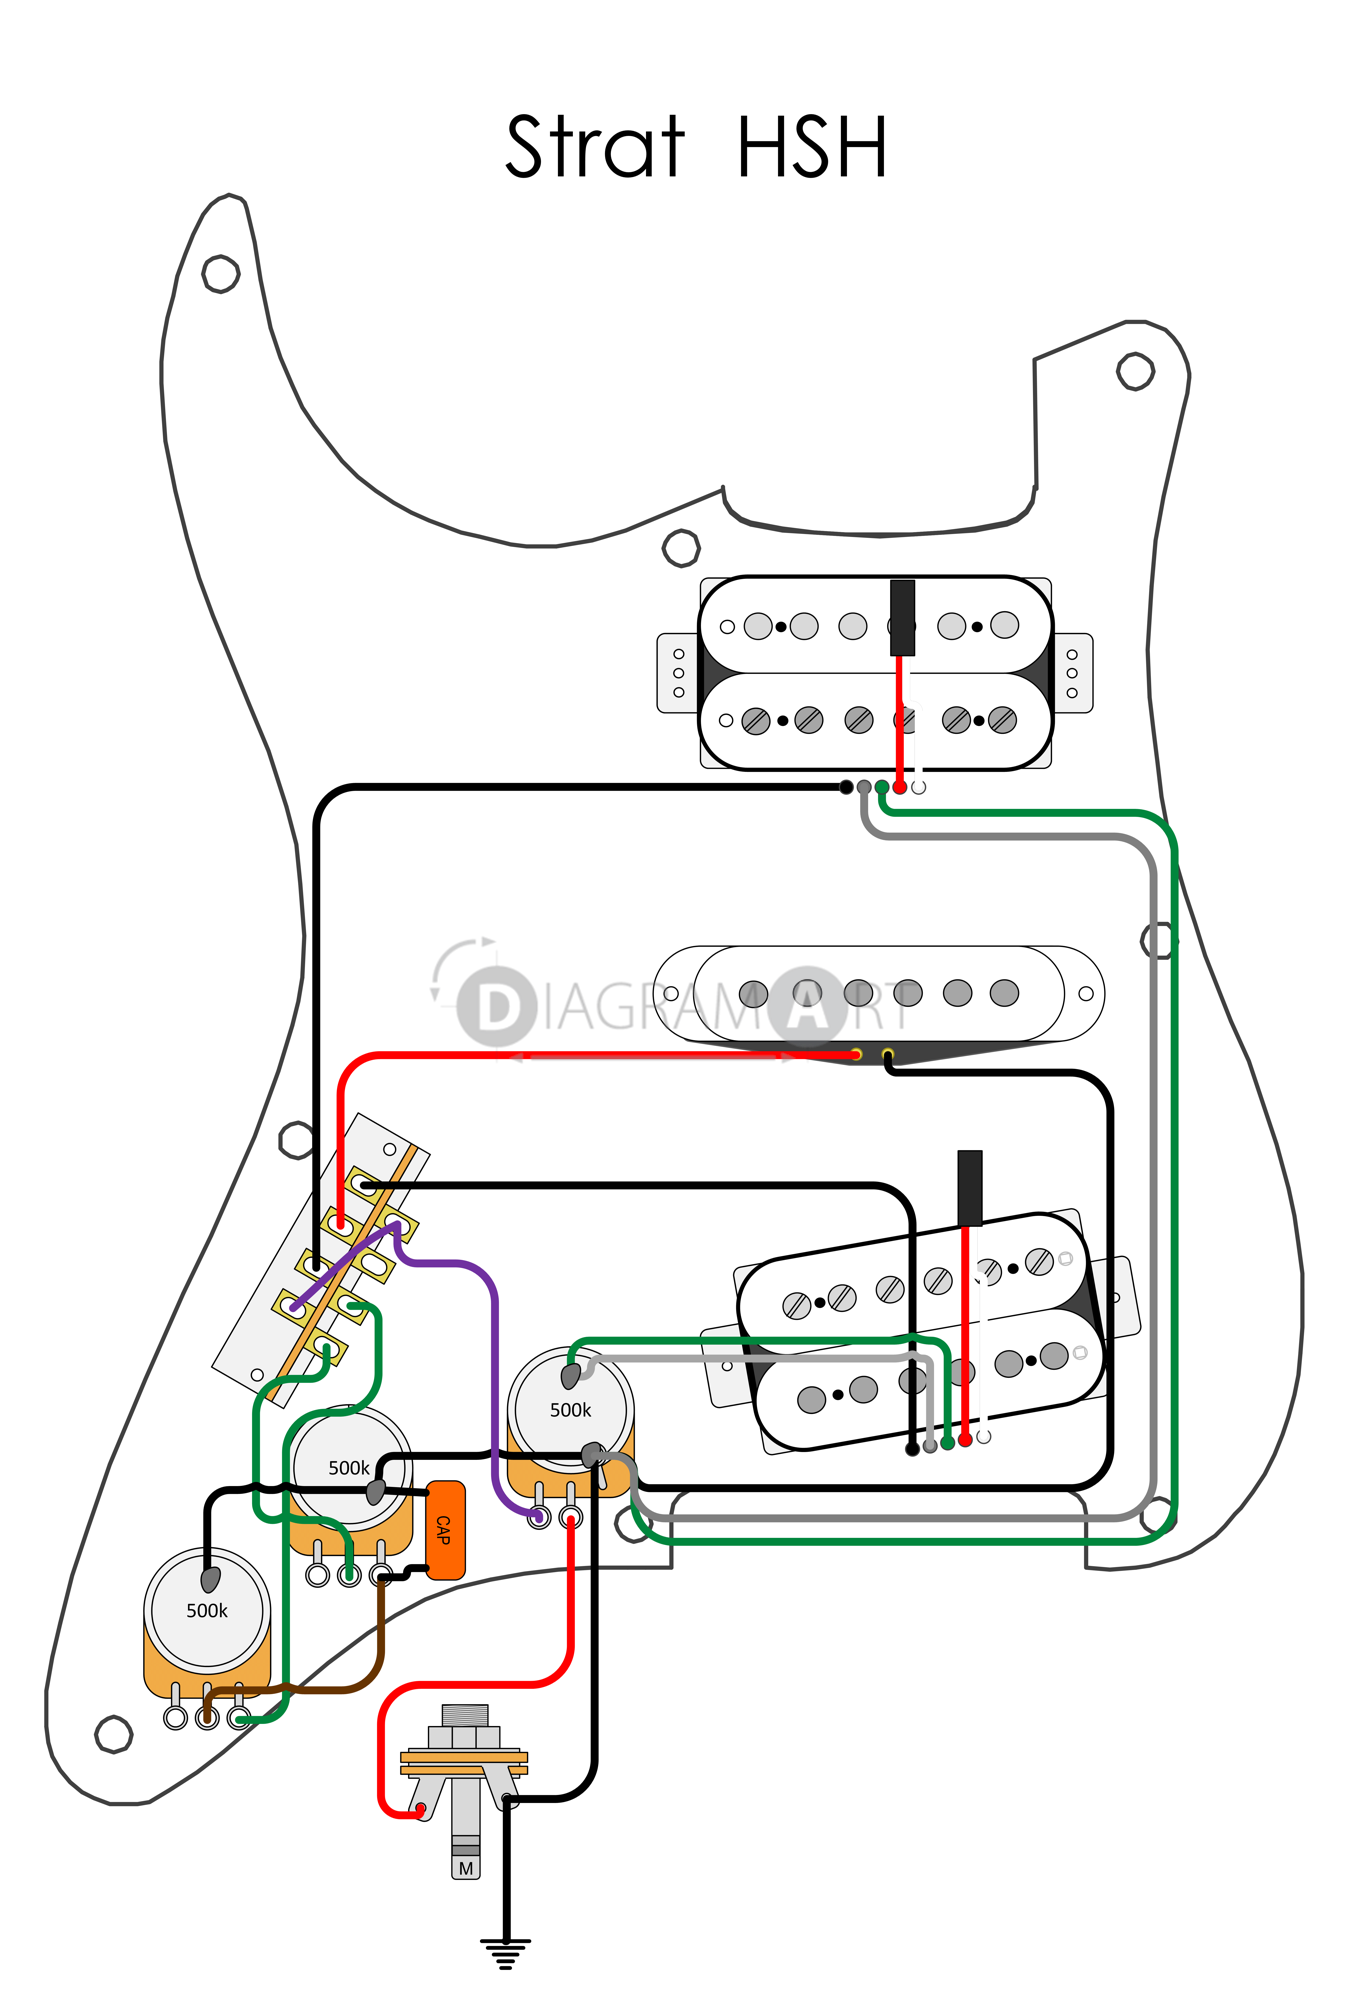 download_ef870d50 d966 419d a0f4 22998adecec6?v=1476390216 electric guitar wiring strat hsh [electric circuit] diagramart strat hsh wiring diagram at reclaimingppi.co